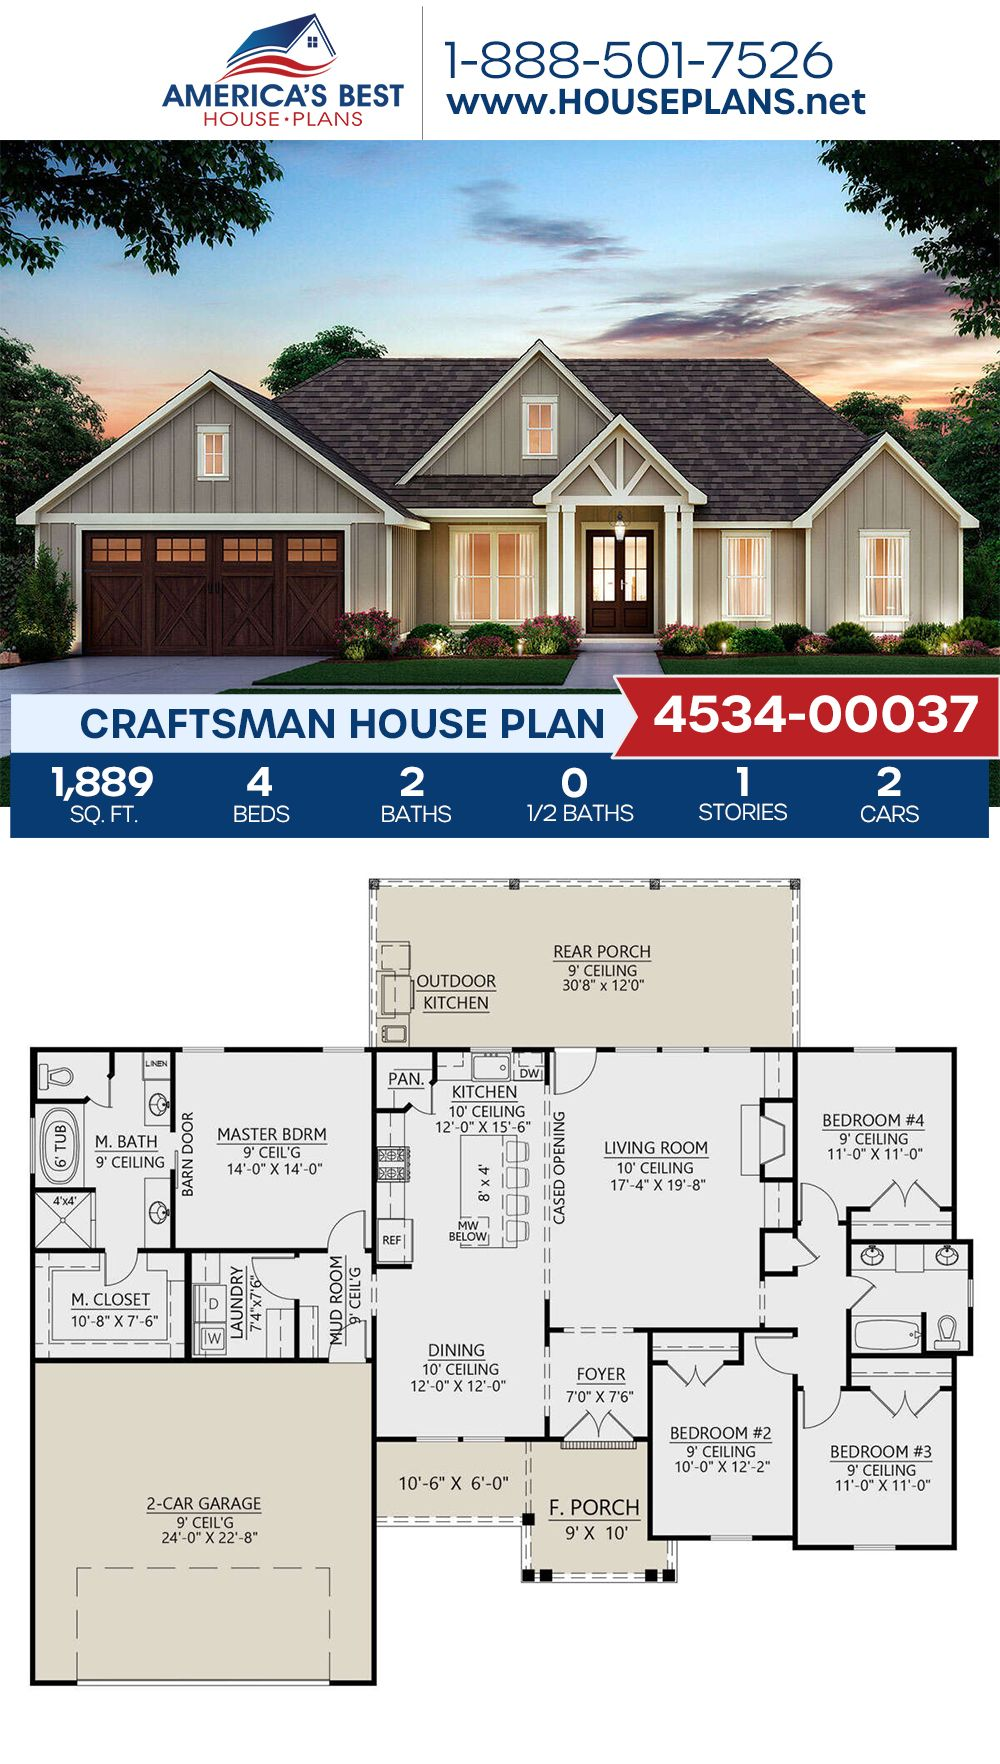 House Plan 4534 00037 Craftsman Plan 1 889 Square Feet 4 Bedrooms 2 Bathrooms My House Plans Craftsman House Plans House Blueprints